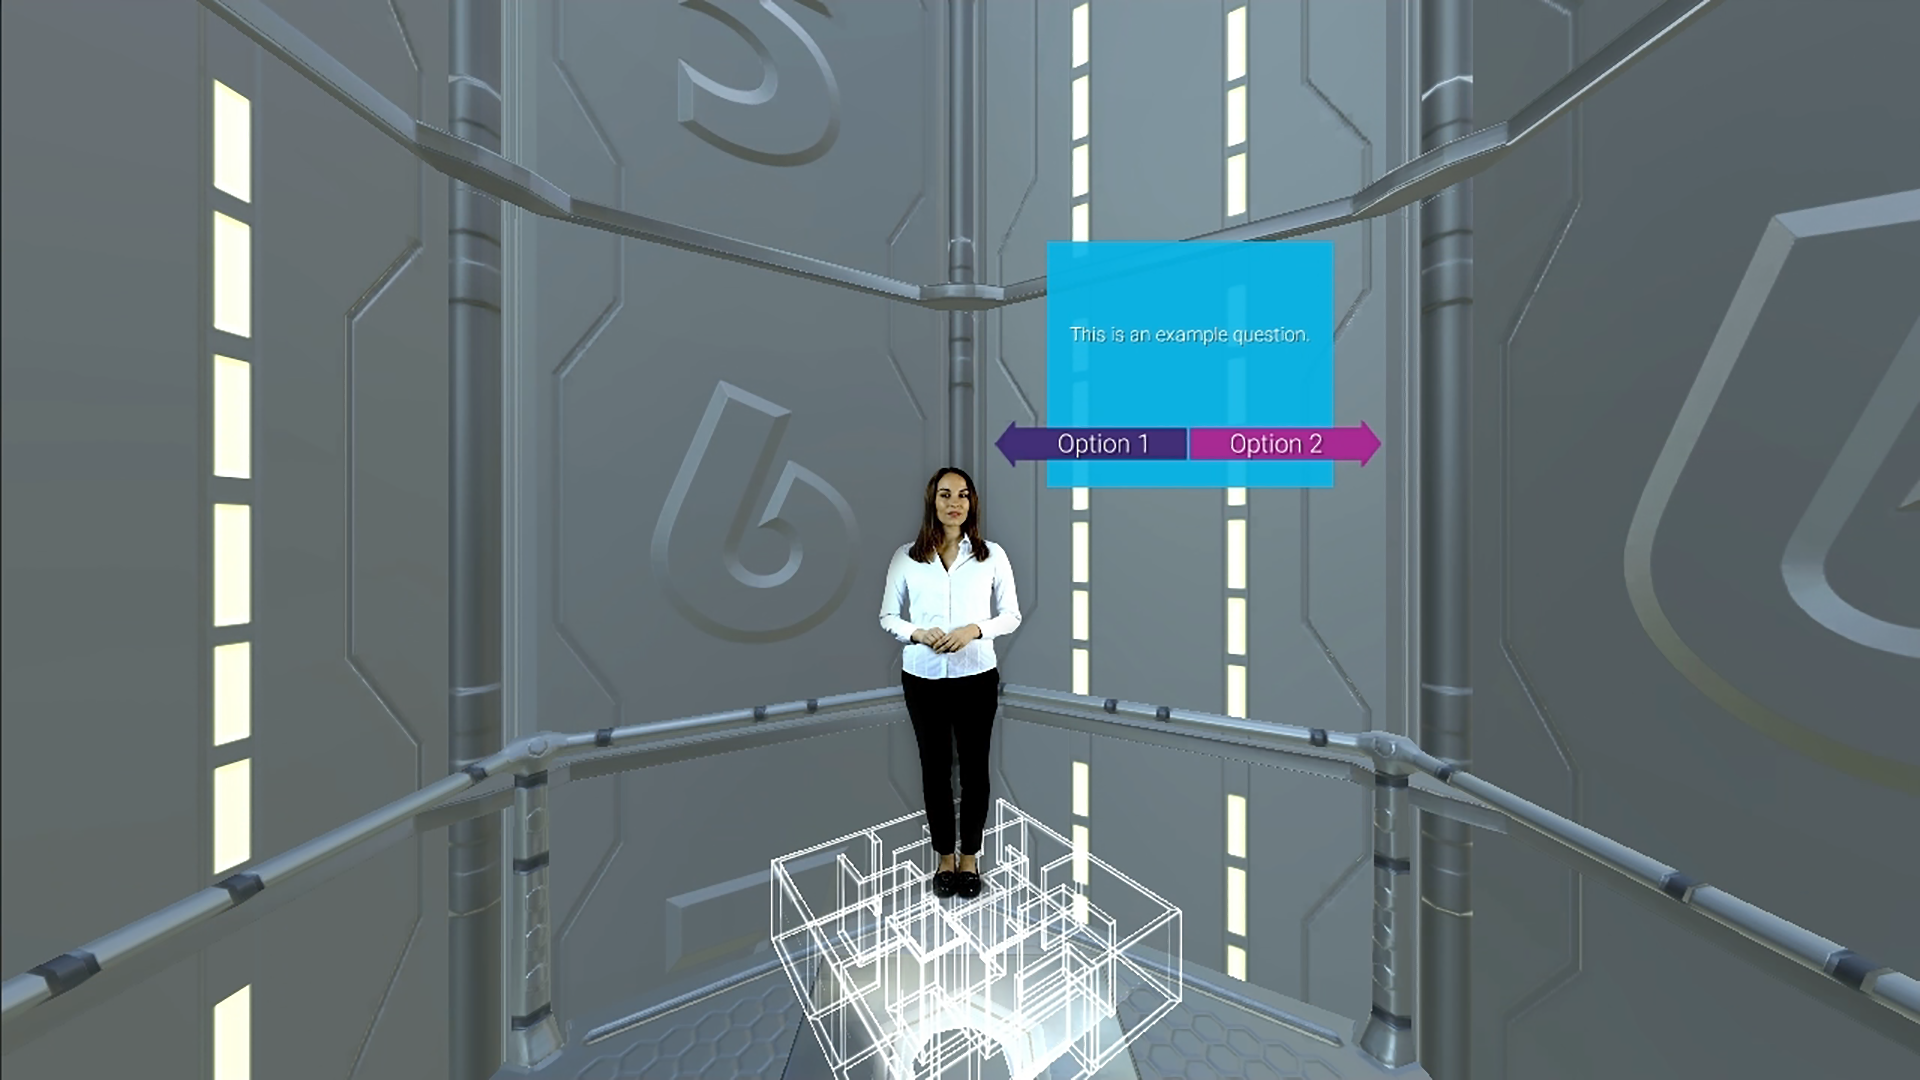 vr_learning_01, office woman standing on a maze with graphic buttons, option 1 and option 2